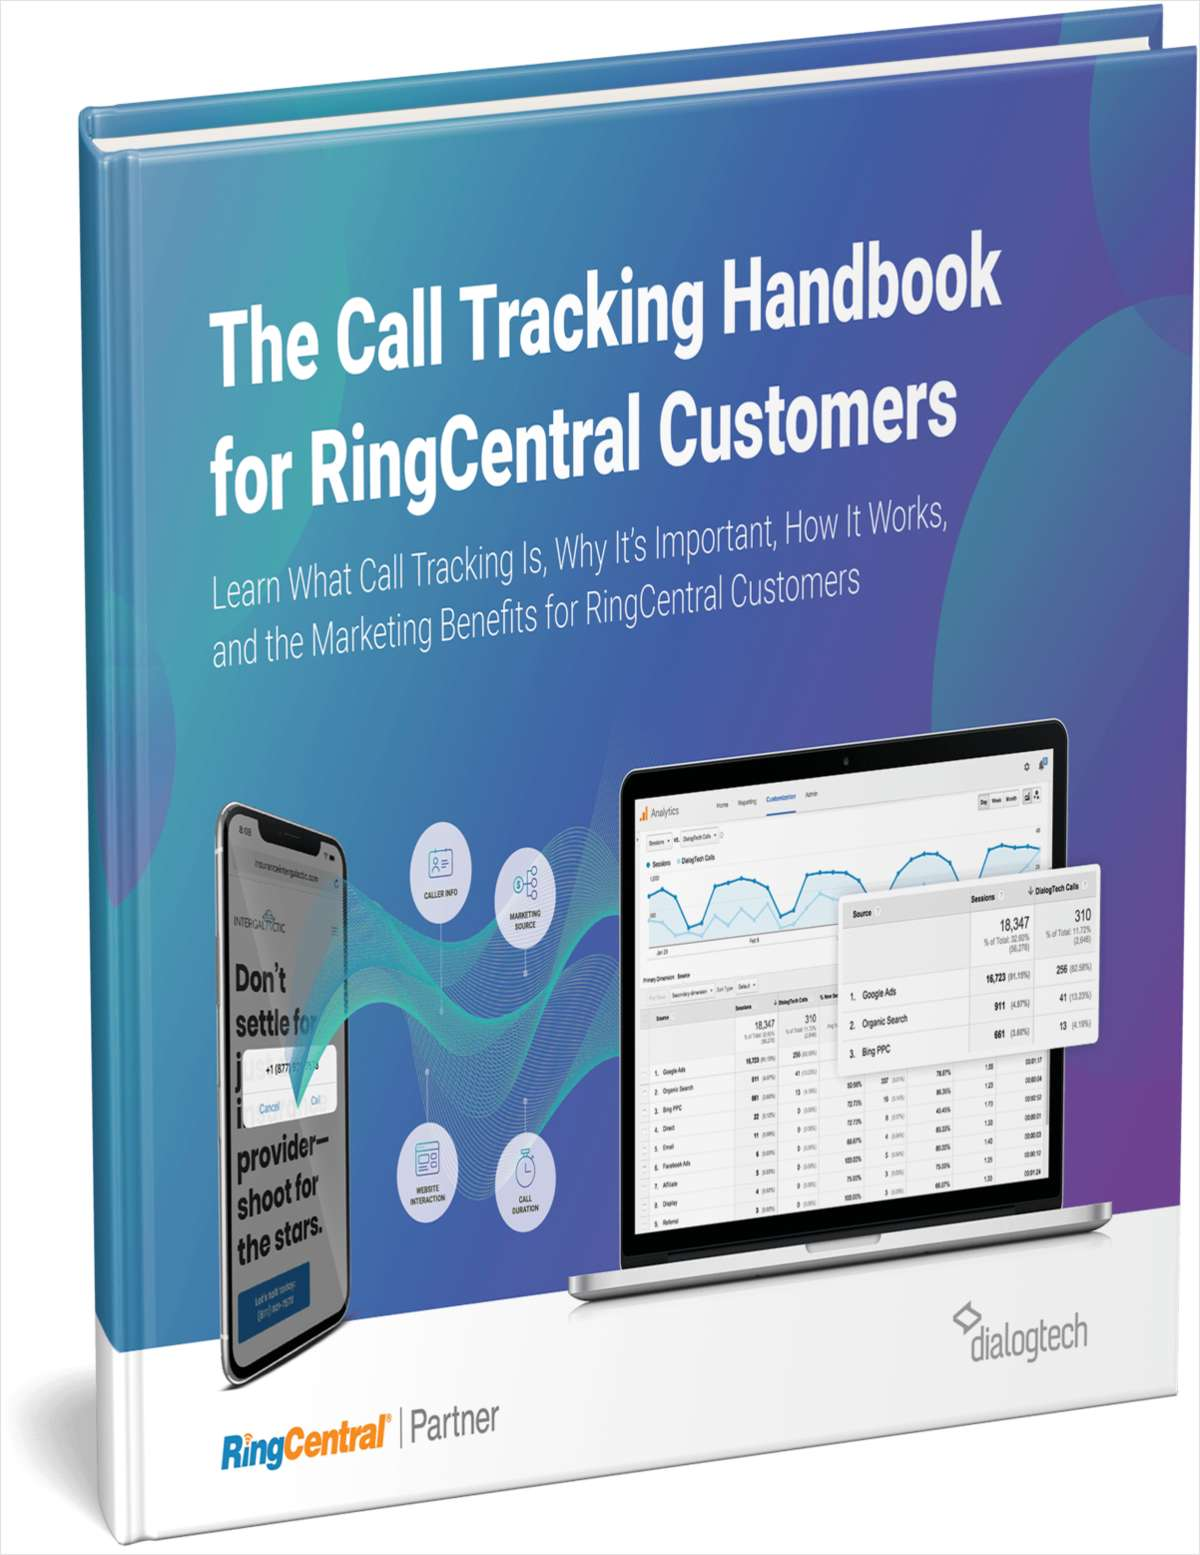 The Call Tracking Handbook for RingCentral Customers